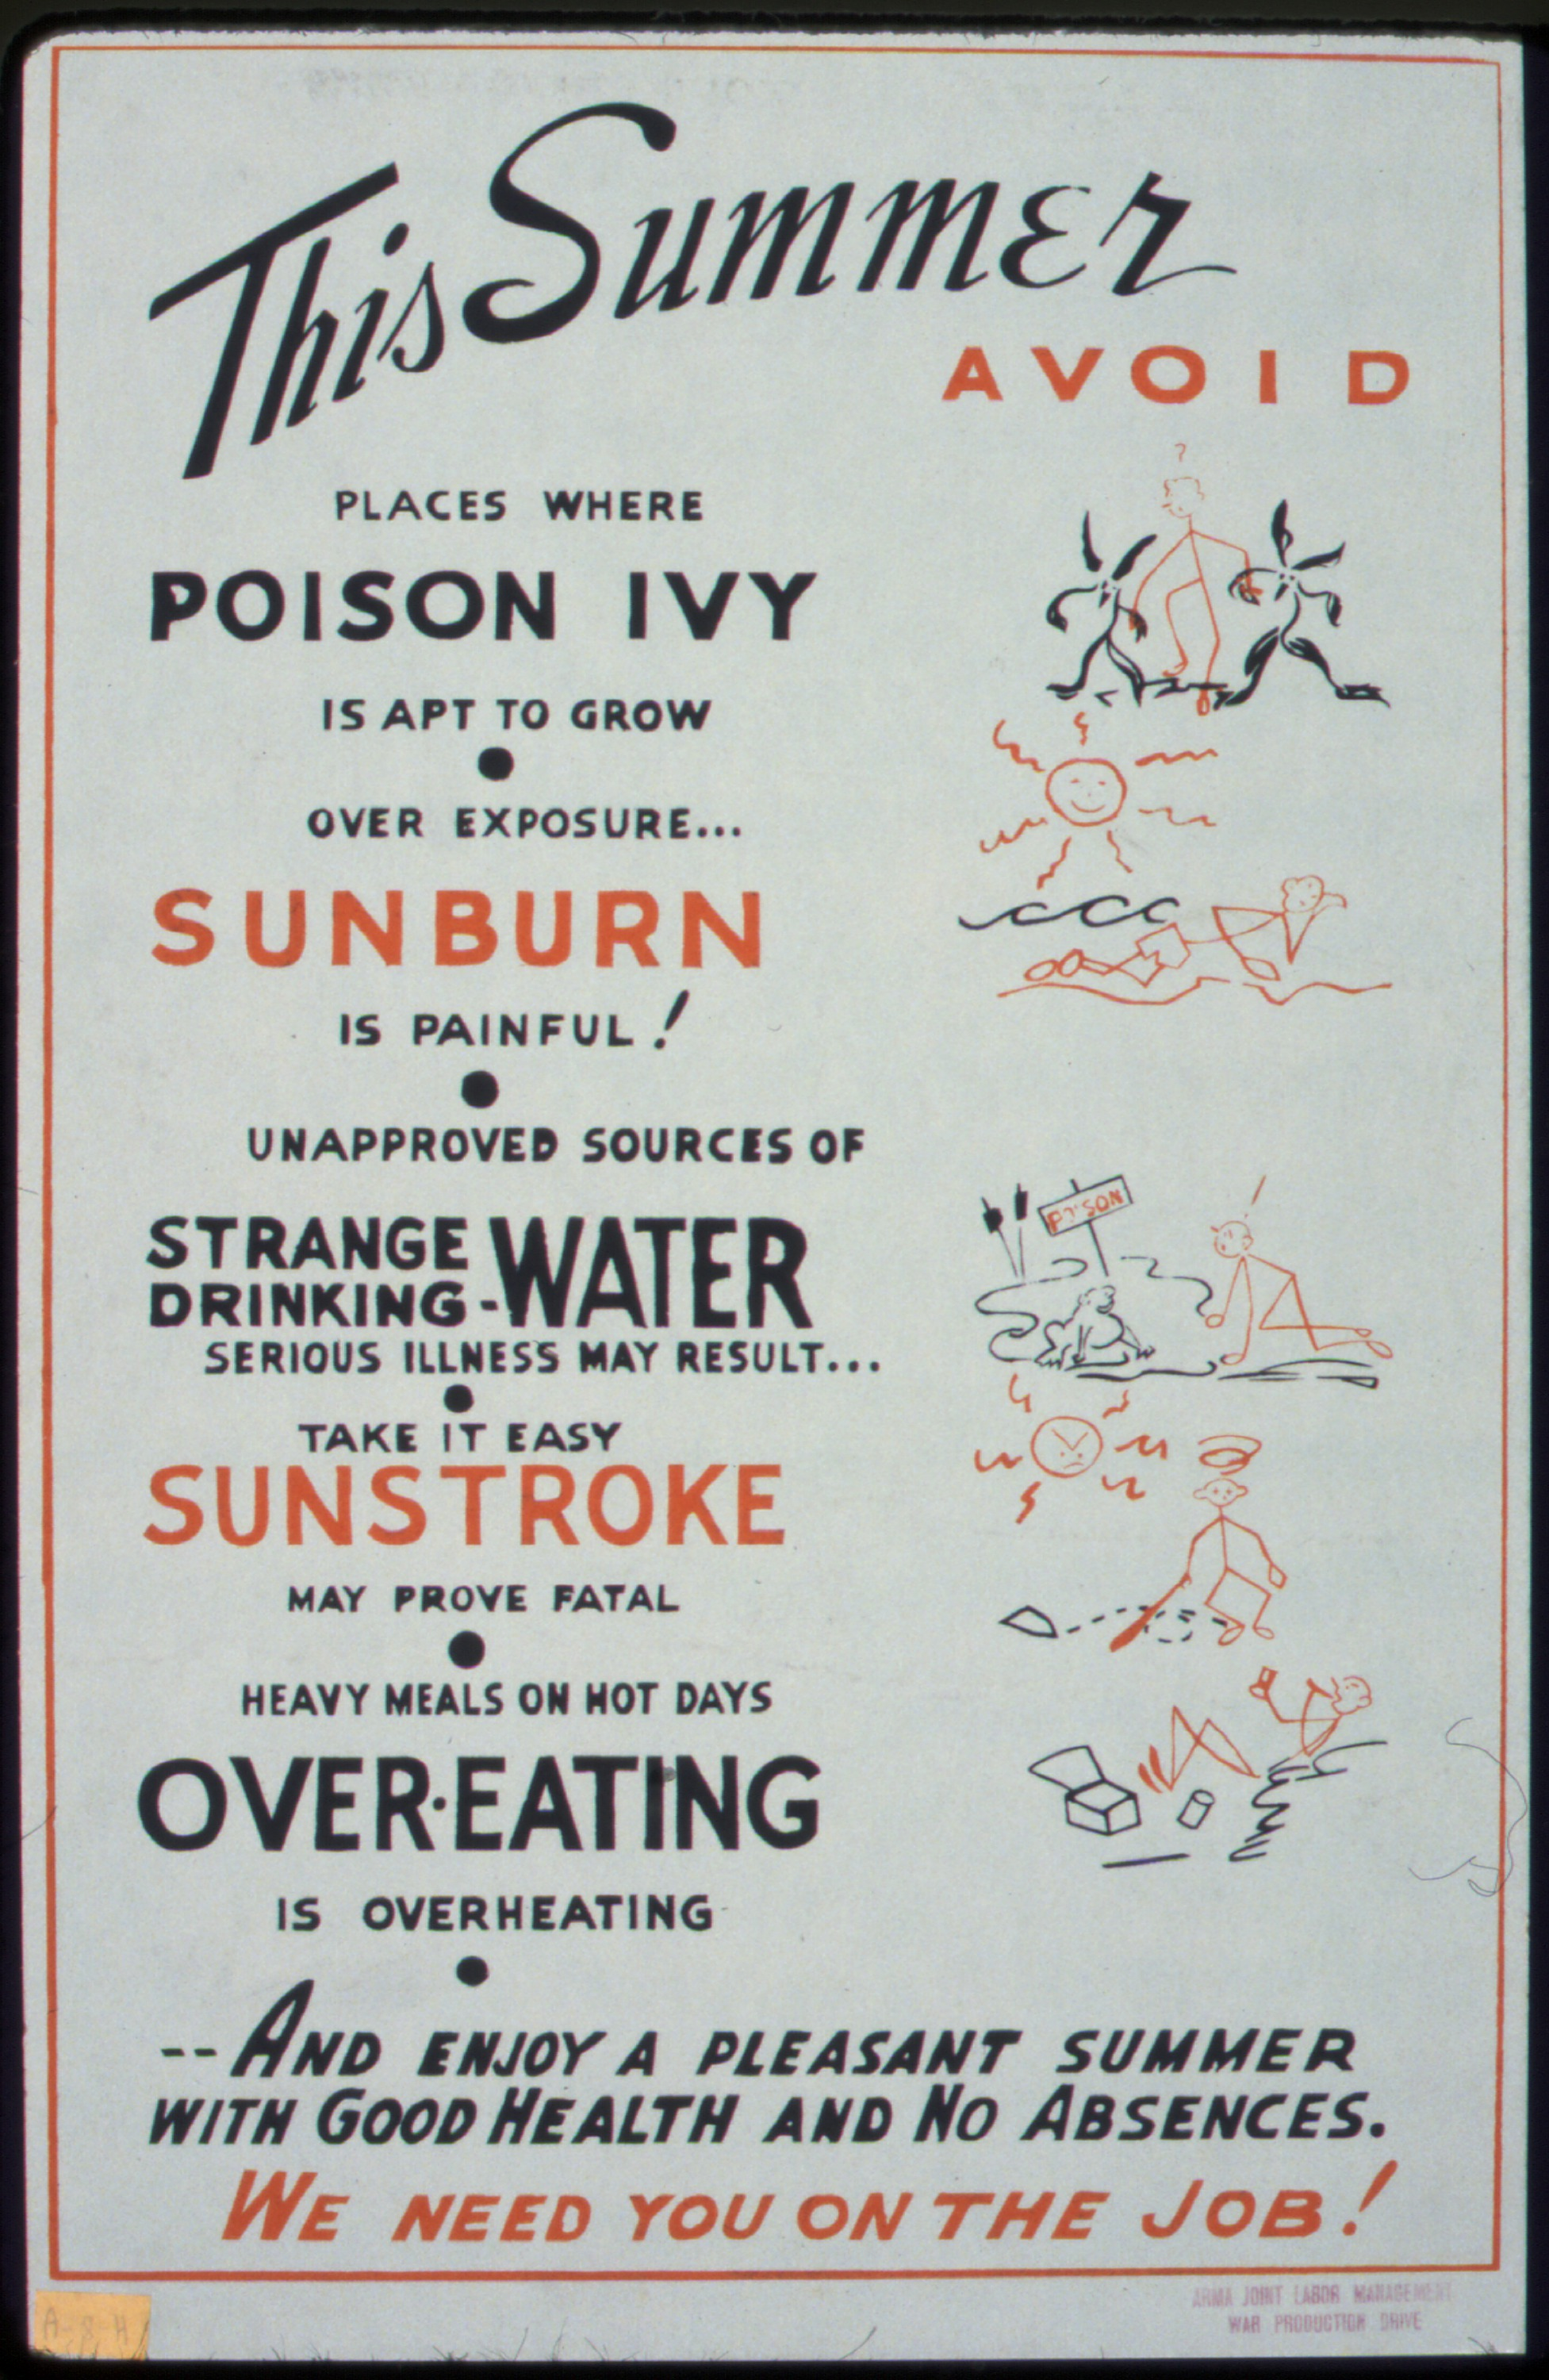 file this summer avoid poison ivy sunburn strange file this summer avoid poison ivy